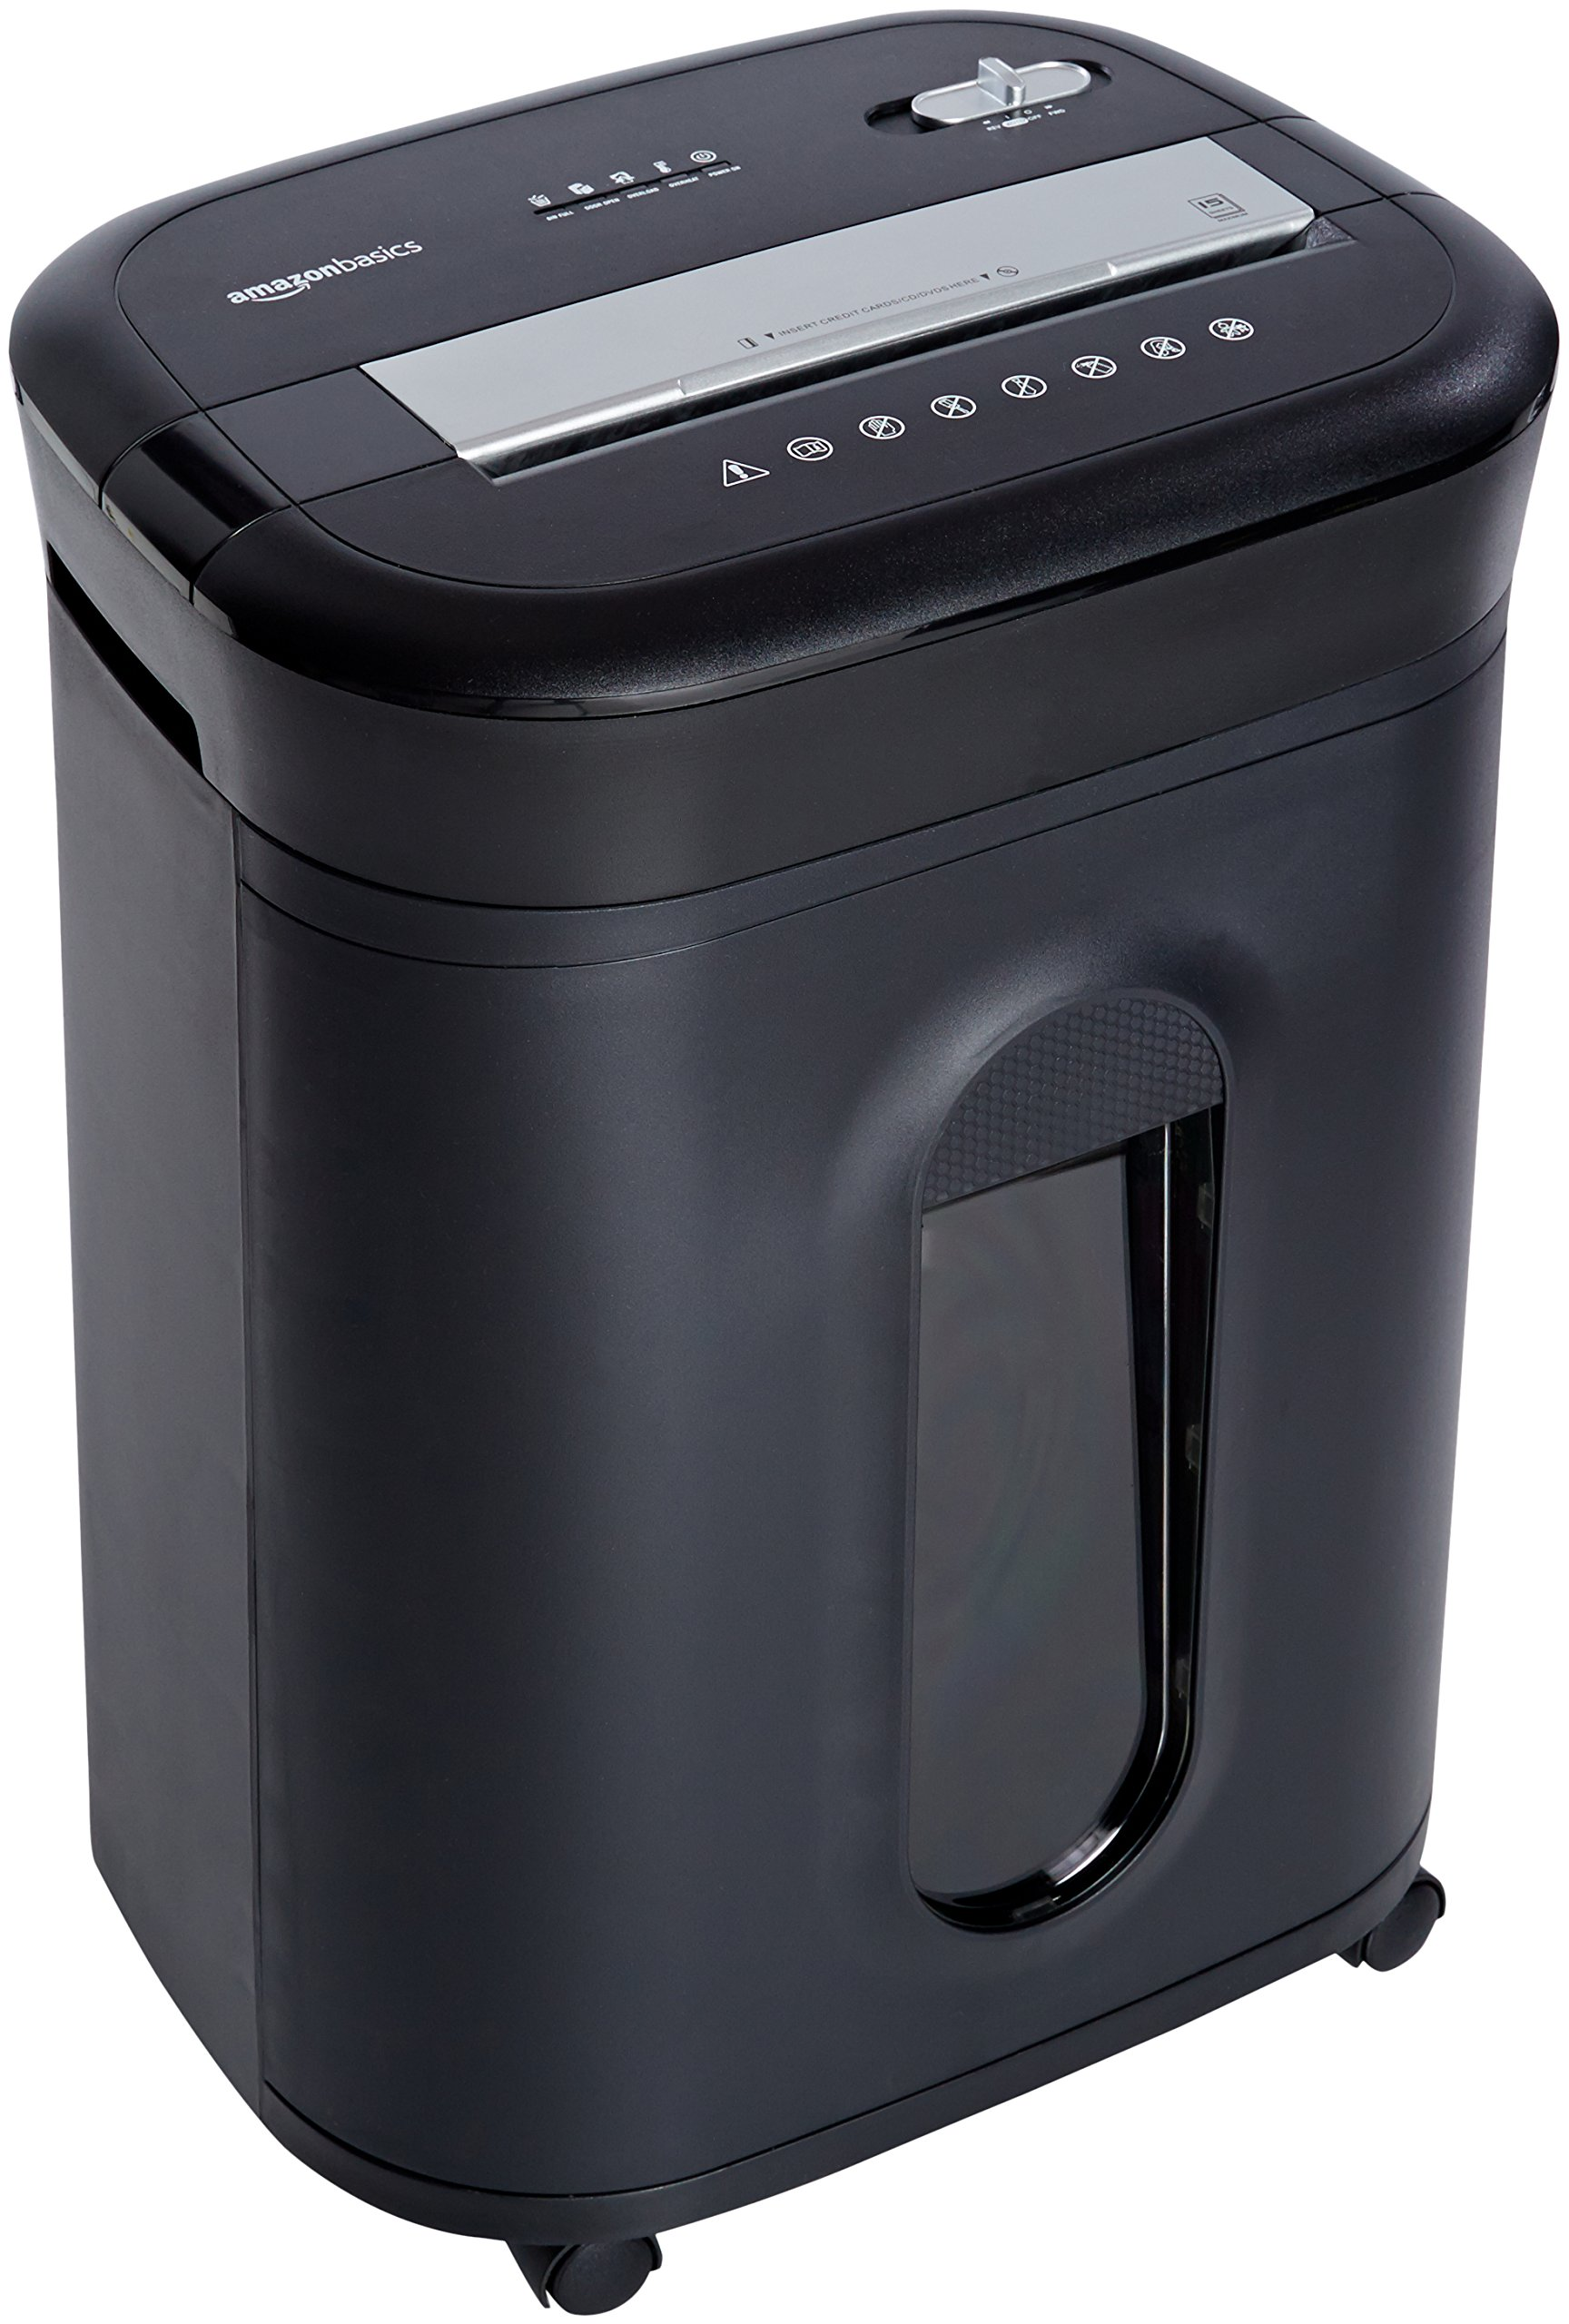 AmazonBasics 15 Sheet Cross Cut Credit Shredder